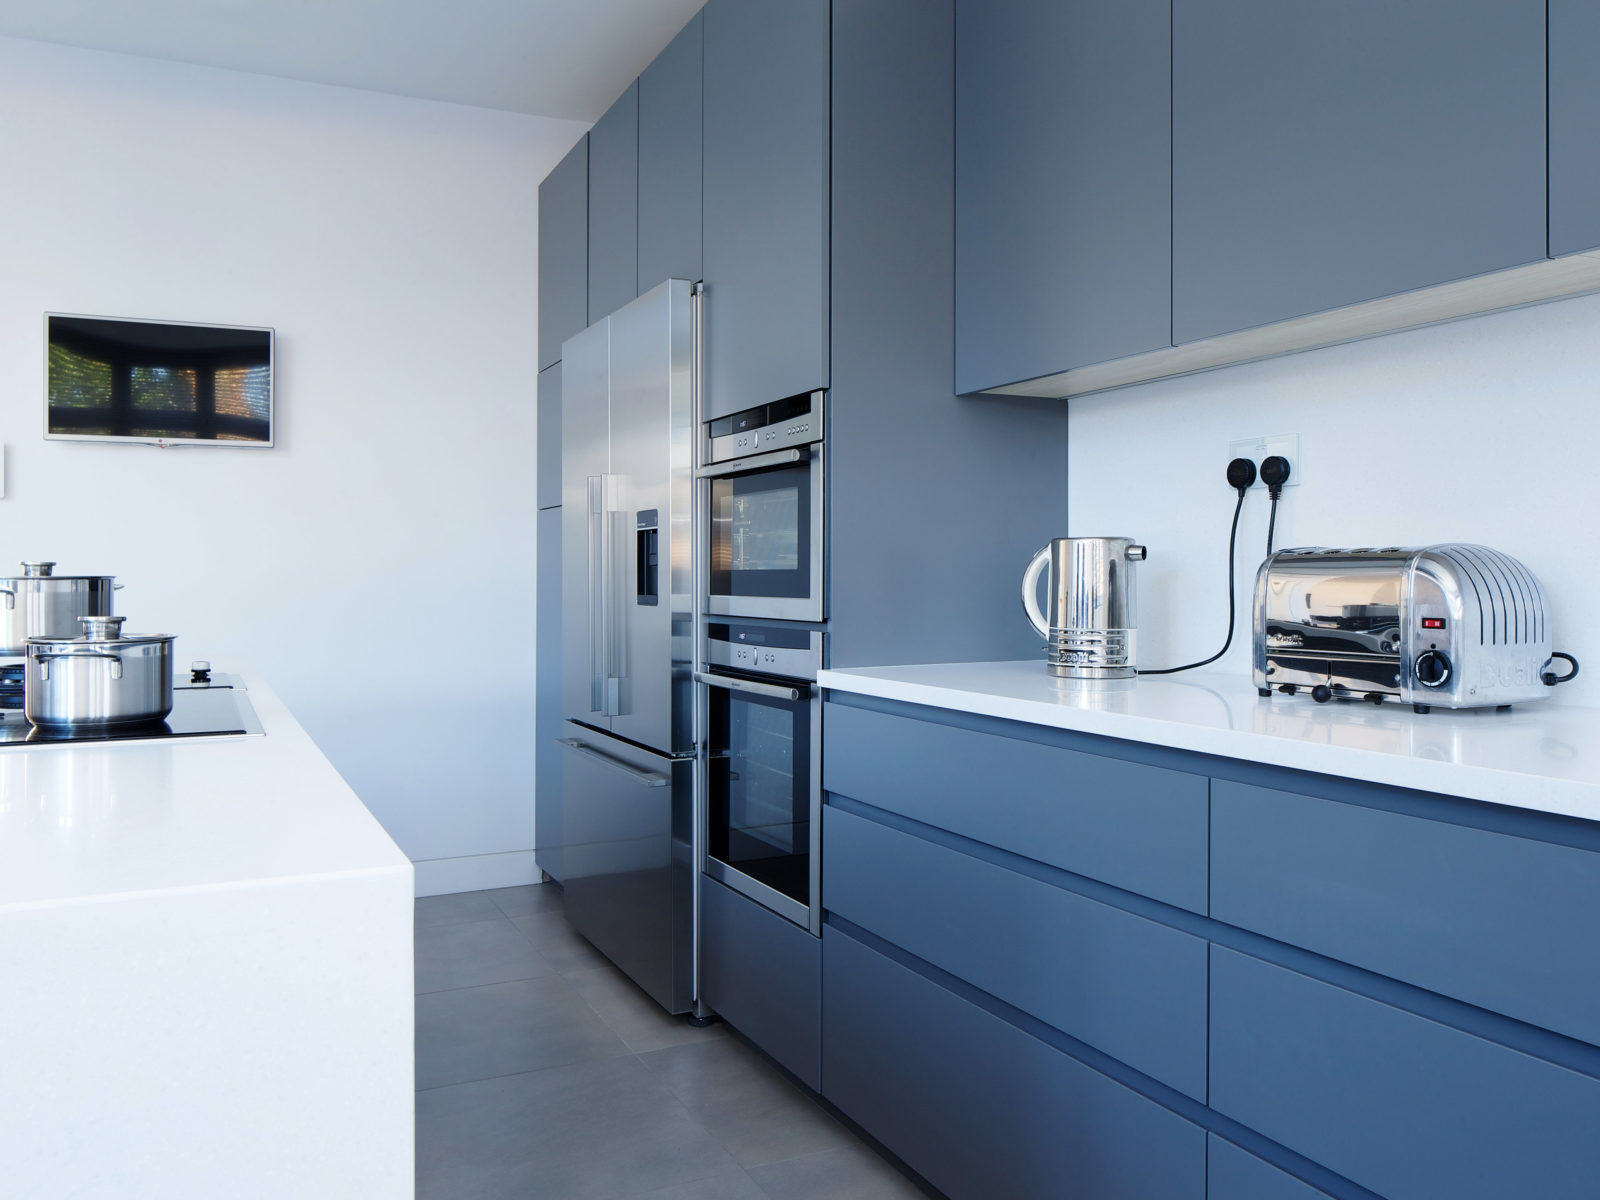 Grey matt lacquered kitchen with long handless drawers